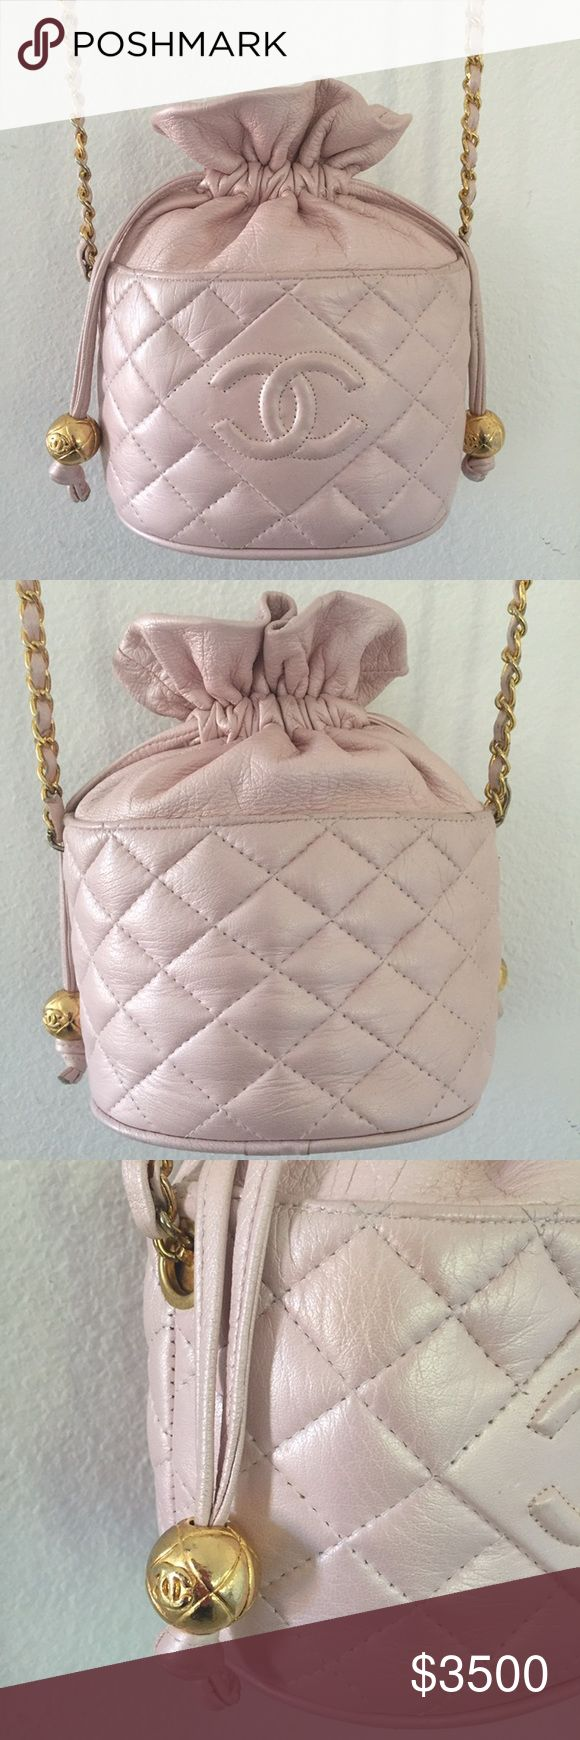 CHANEL PINK QUILTED CC DRAWSTRING BUCKET BAG - Excellent Condition: minor signs of handling on leather/hardware; light wear on chain strap.   - Lambskin leather  - Gold-tone hardware  - Classic Chanel chain shoulder strap - Authentic.  Hologram sticker is gone. - Small amount of what looks like glue residue on inside edge of quilted seam on top back right.  It is not noticeable unless looking for it. CHANEL Bags Shoulder Bags